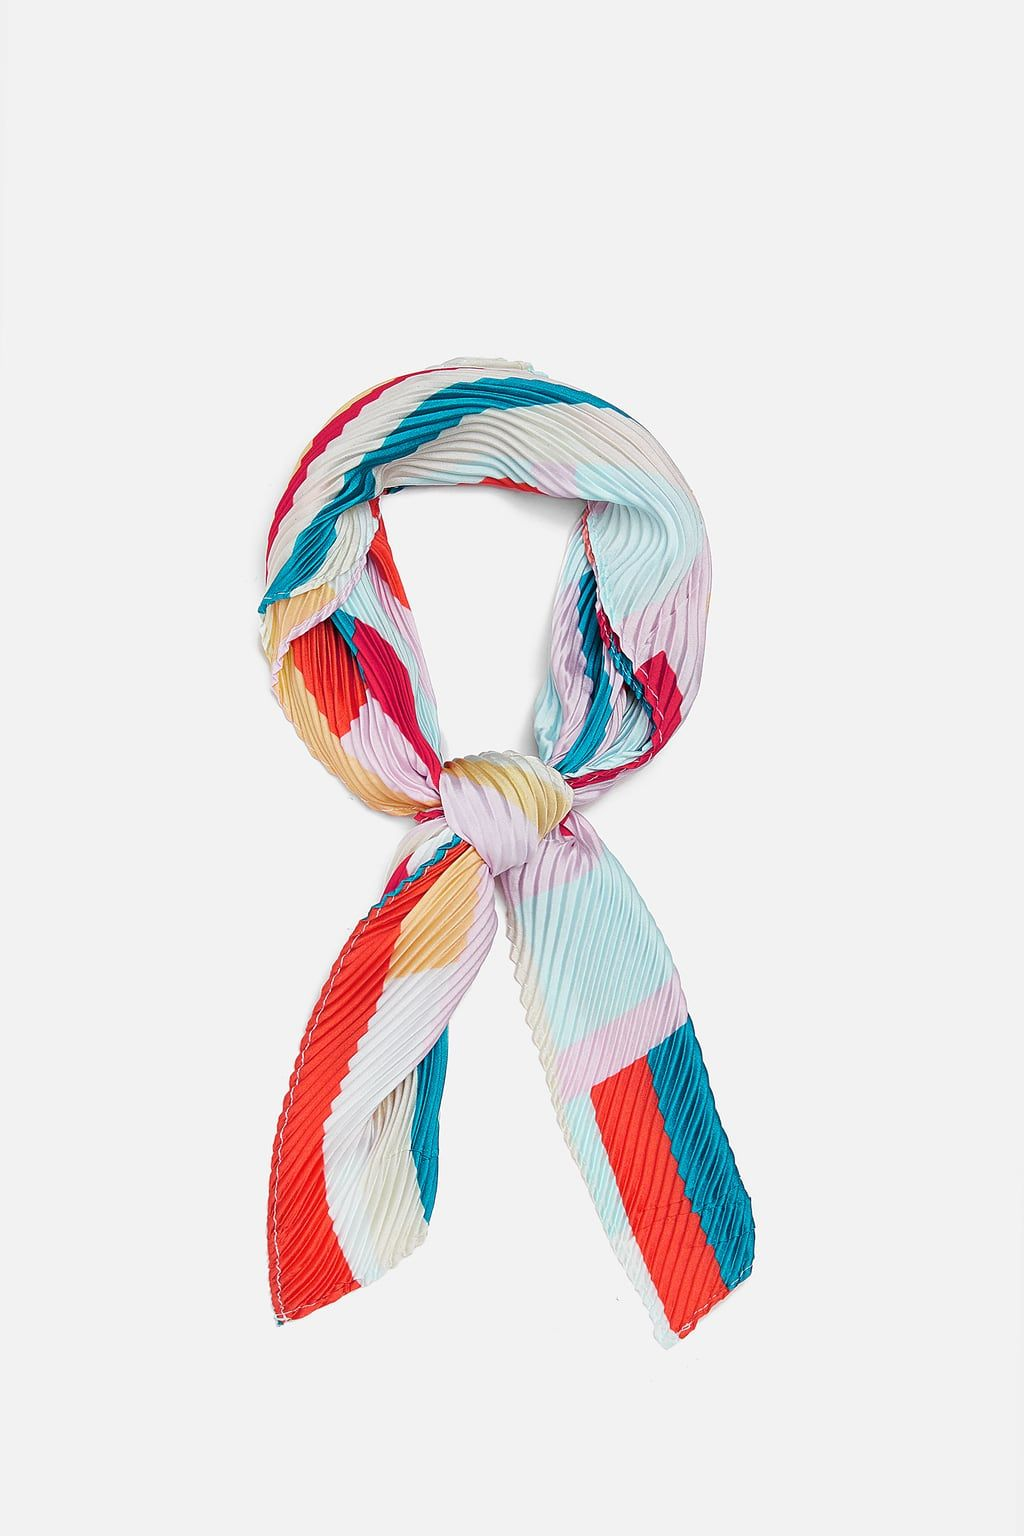 Crinkly 100/% Cotton Scarf Rainbow Multicolor Bright Light Weight Summer Fashion